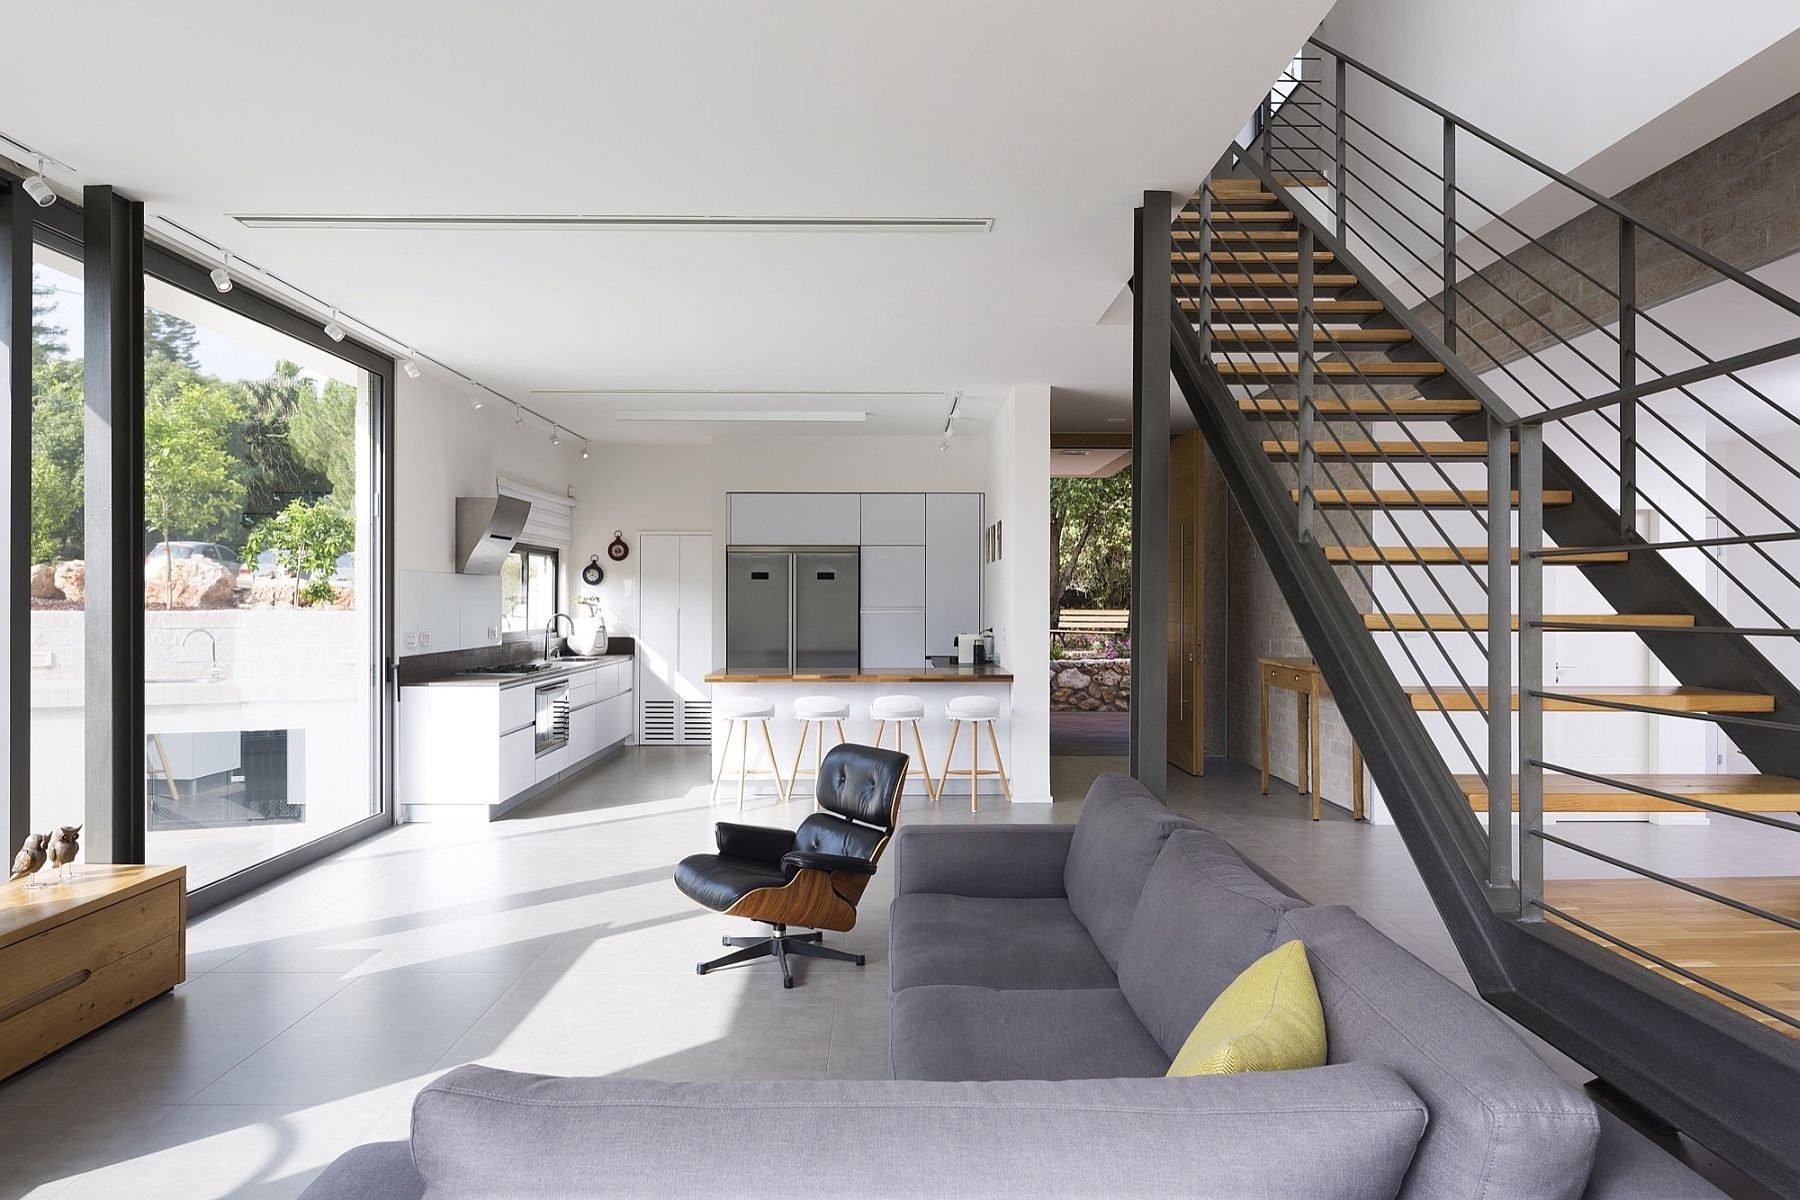 Living area kitchen and dining room of the contemporary Israeli home